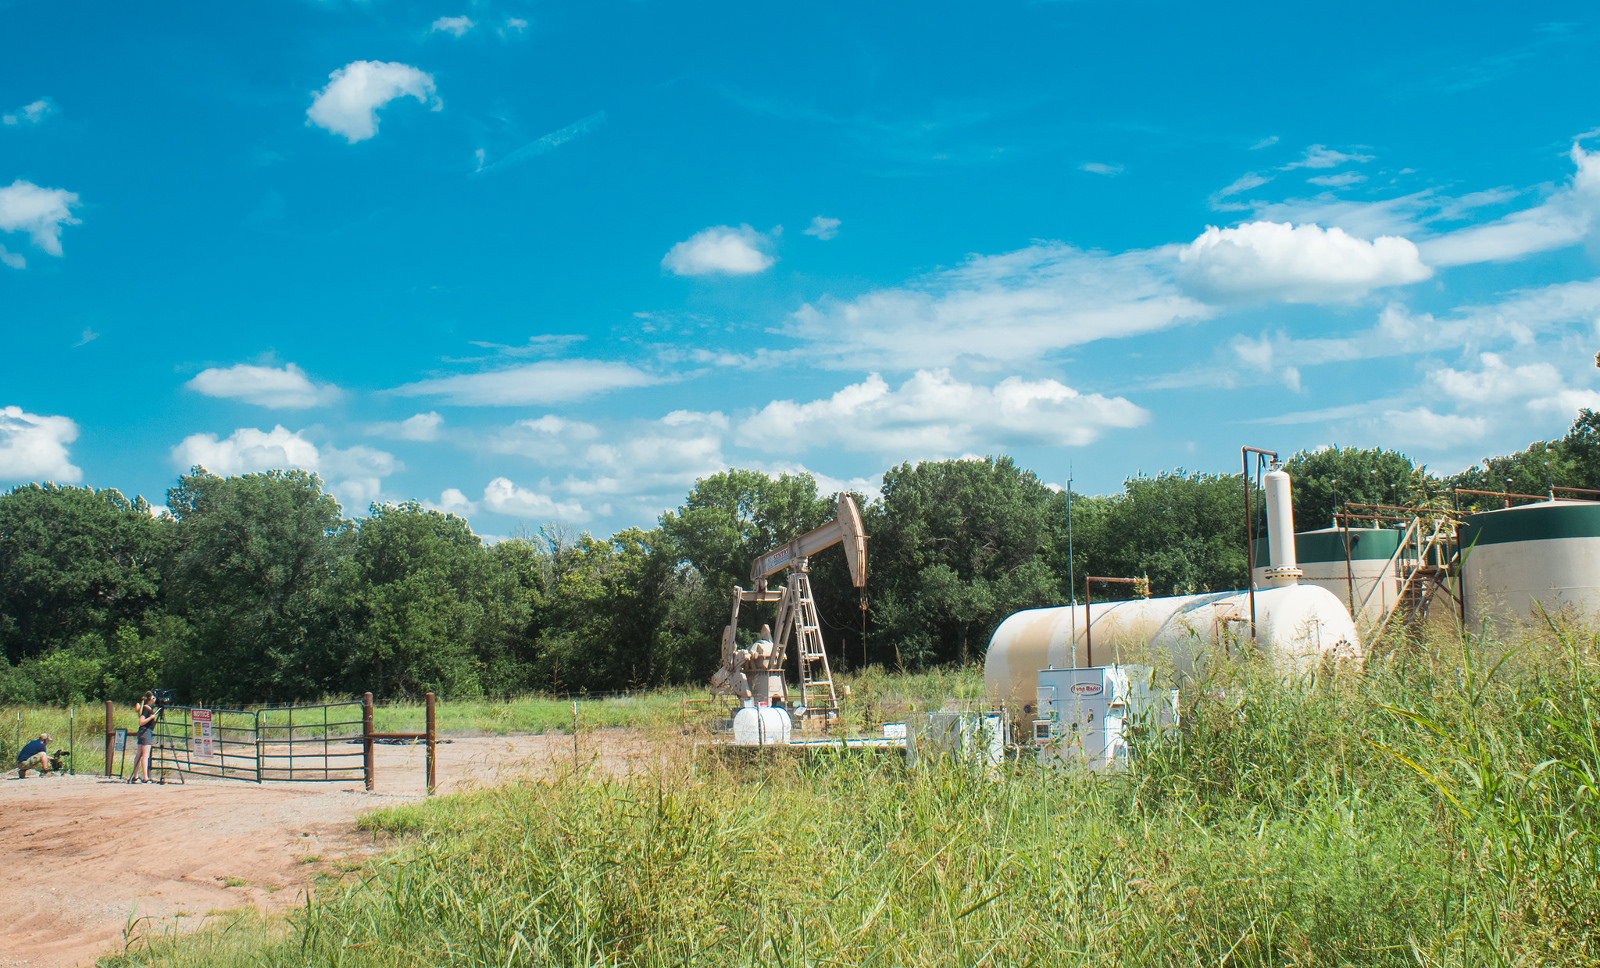 Not in my Backyard: The Impact of Fracking on Local Communities